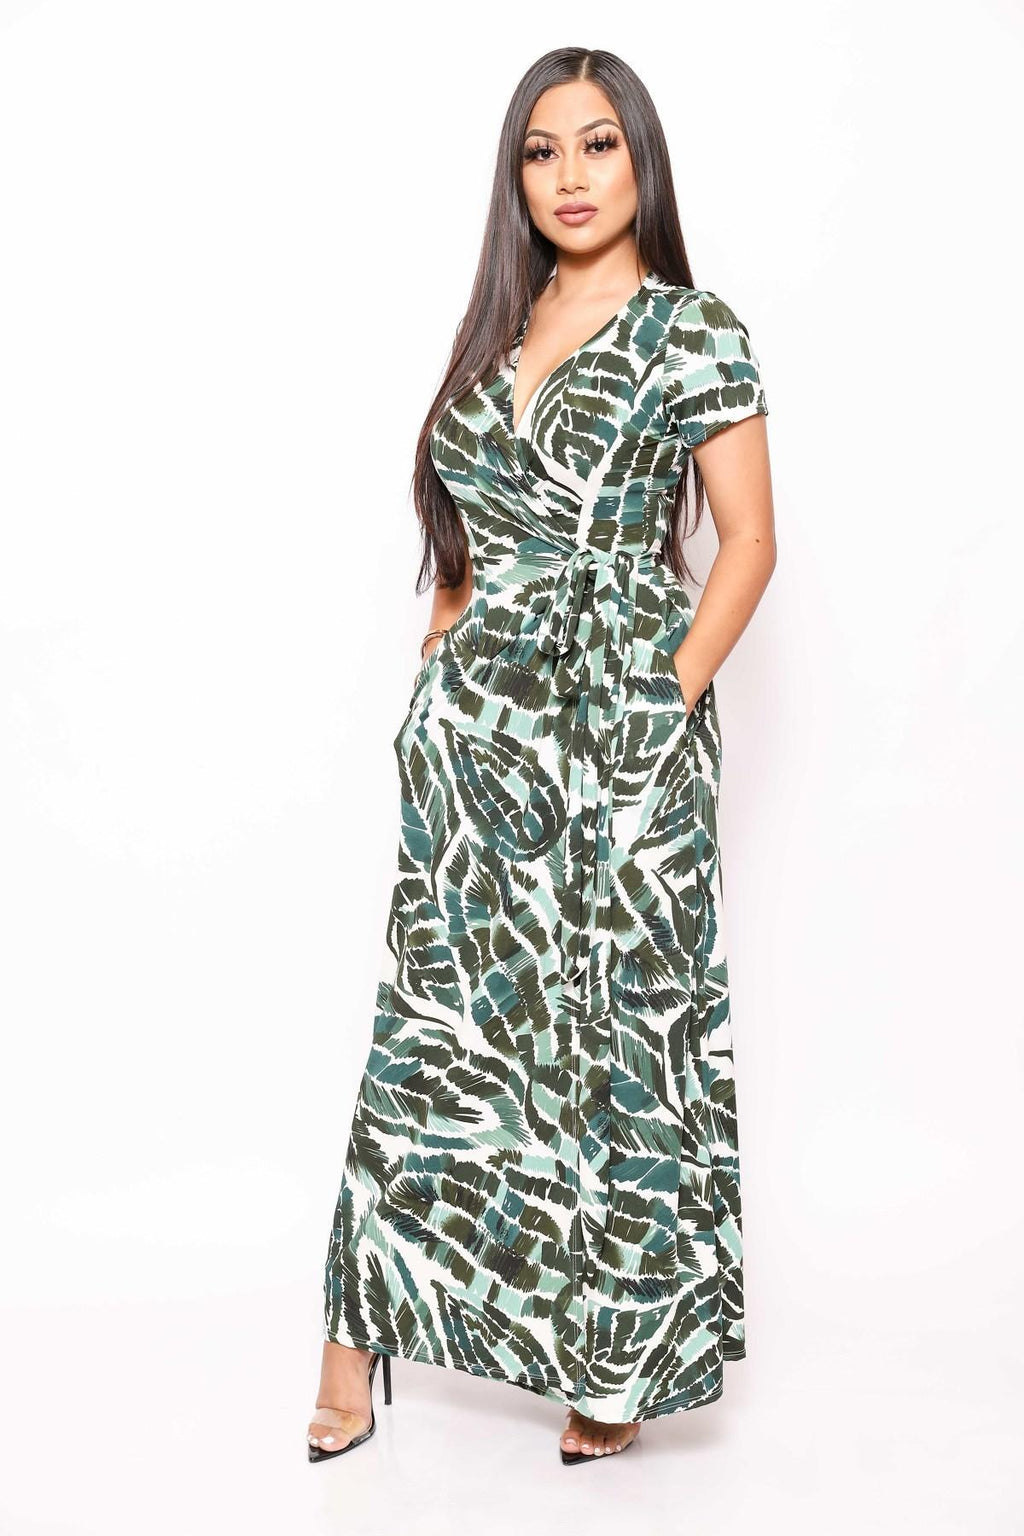 Print Short Sleeve, Maxi Wrap Dress - Miranda's Paparazzi Style